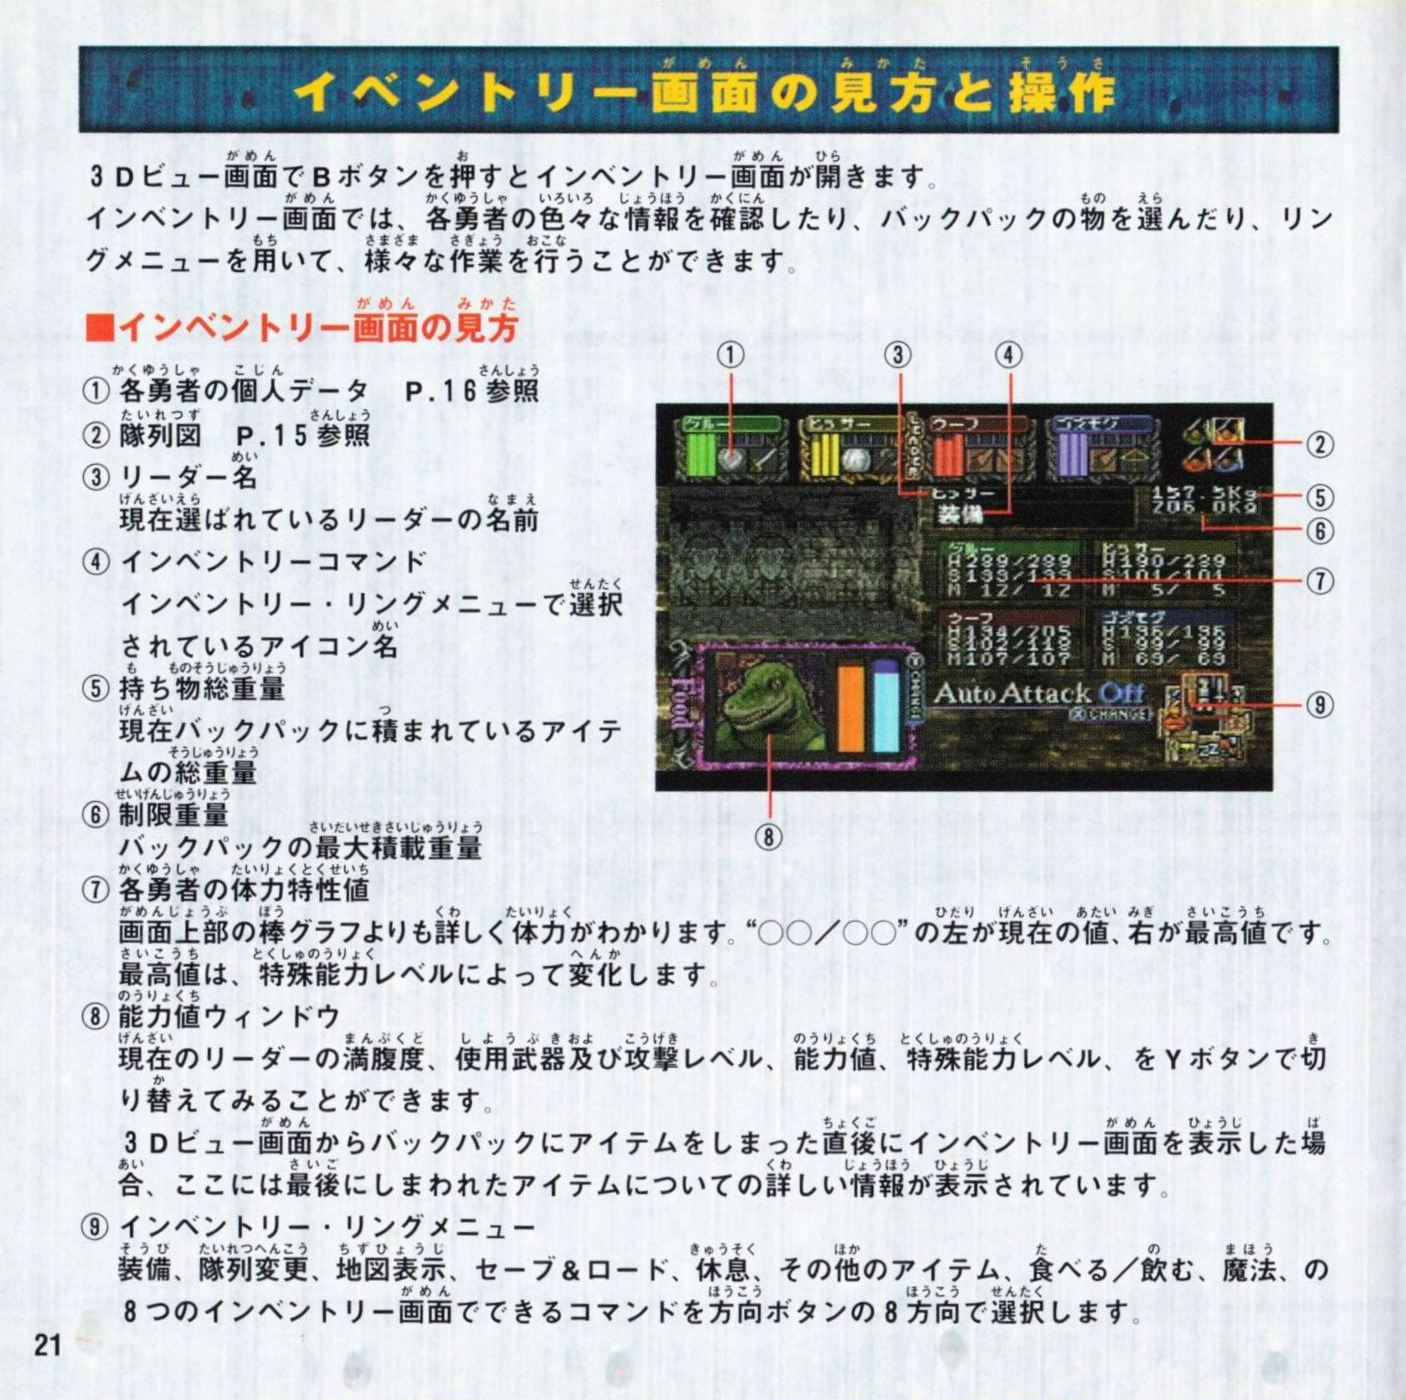 Game - Dungeon Master Nexus - JP - Sega Saturn - Booklet - Page 022 - Scan